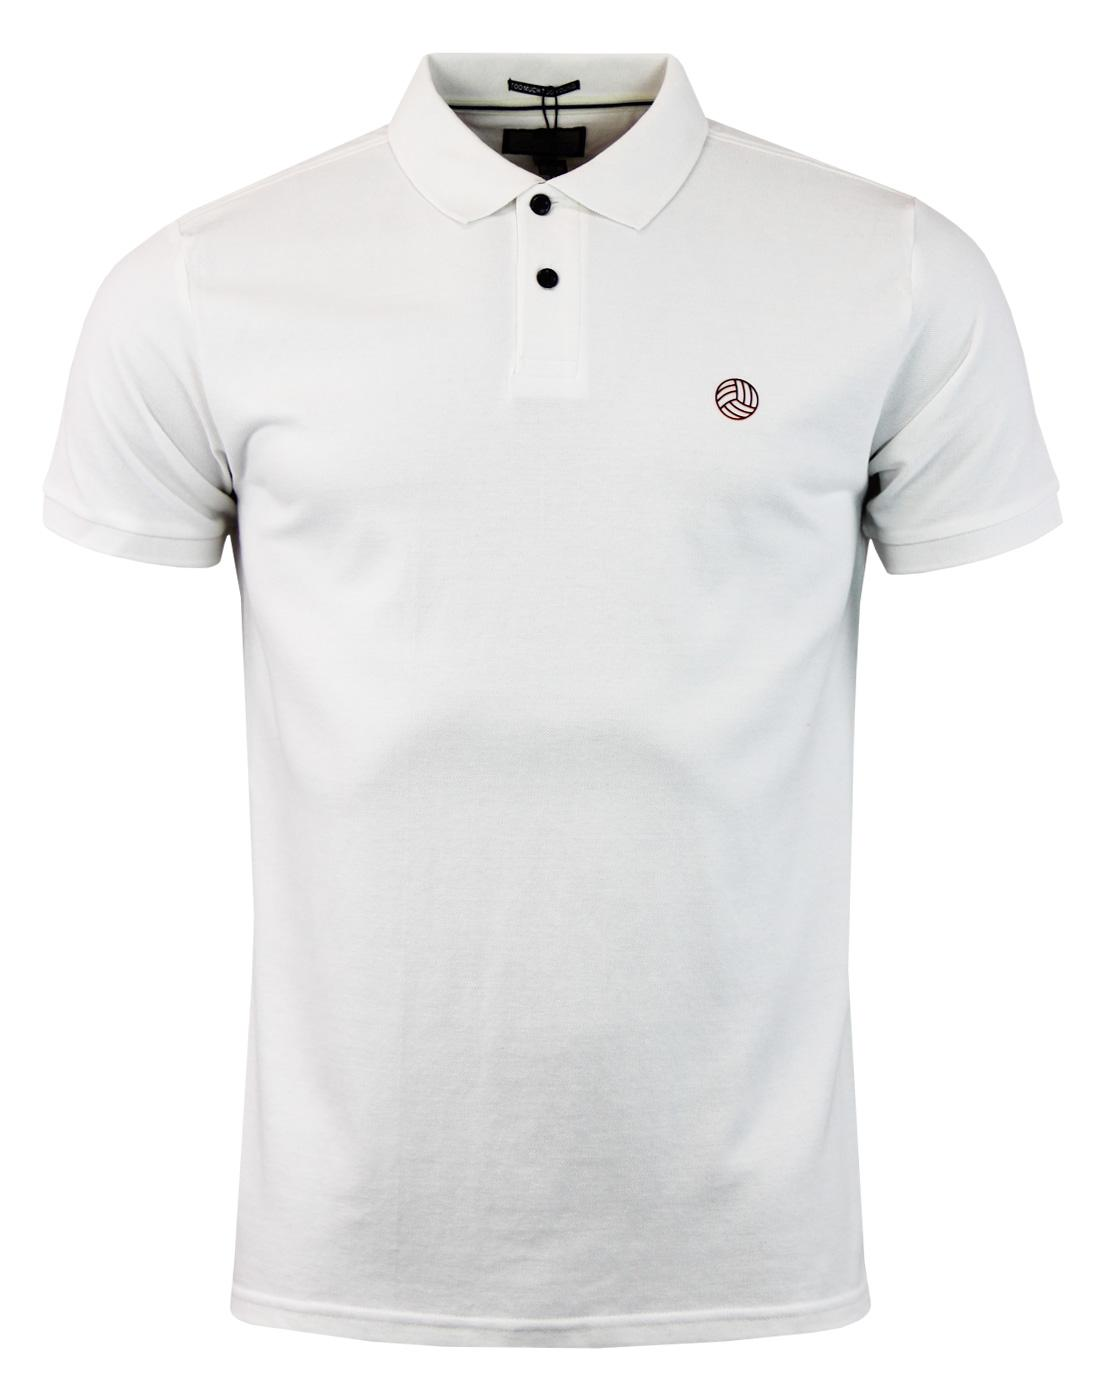 Cruz AMF WEEKEND OFFENDER Mens Mod Football Polo W